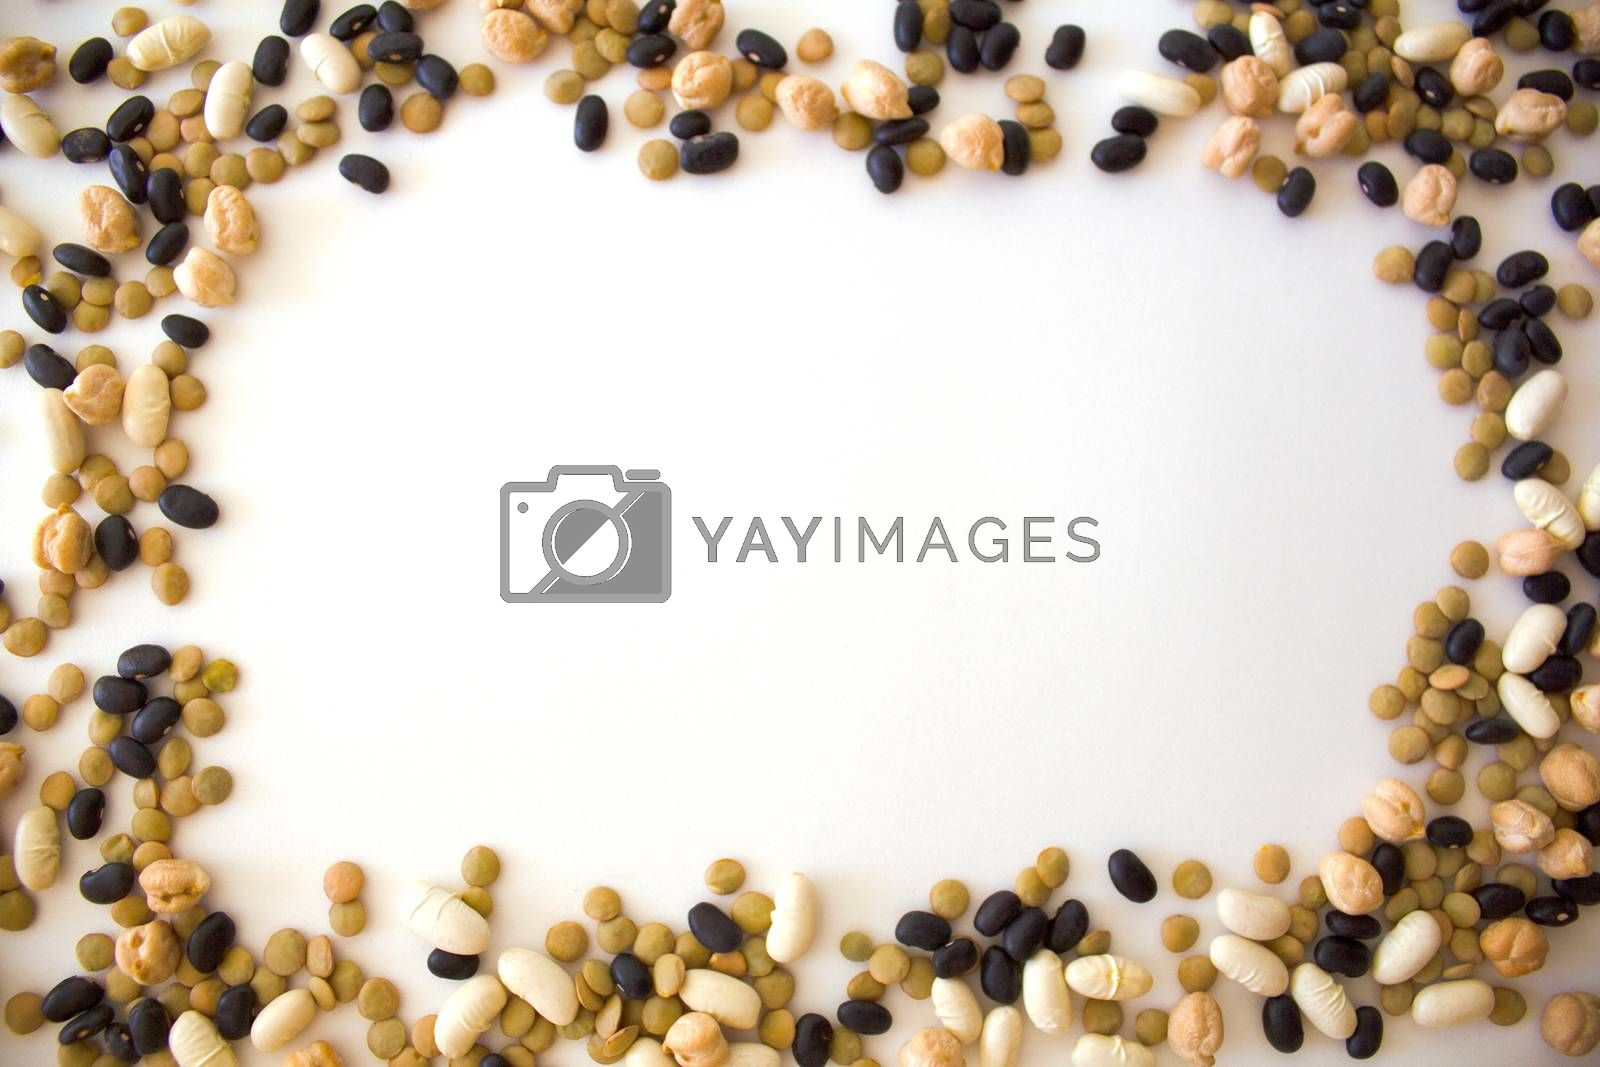 white beans, black beans, peas and lentils arranged in frame form